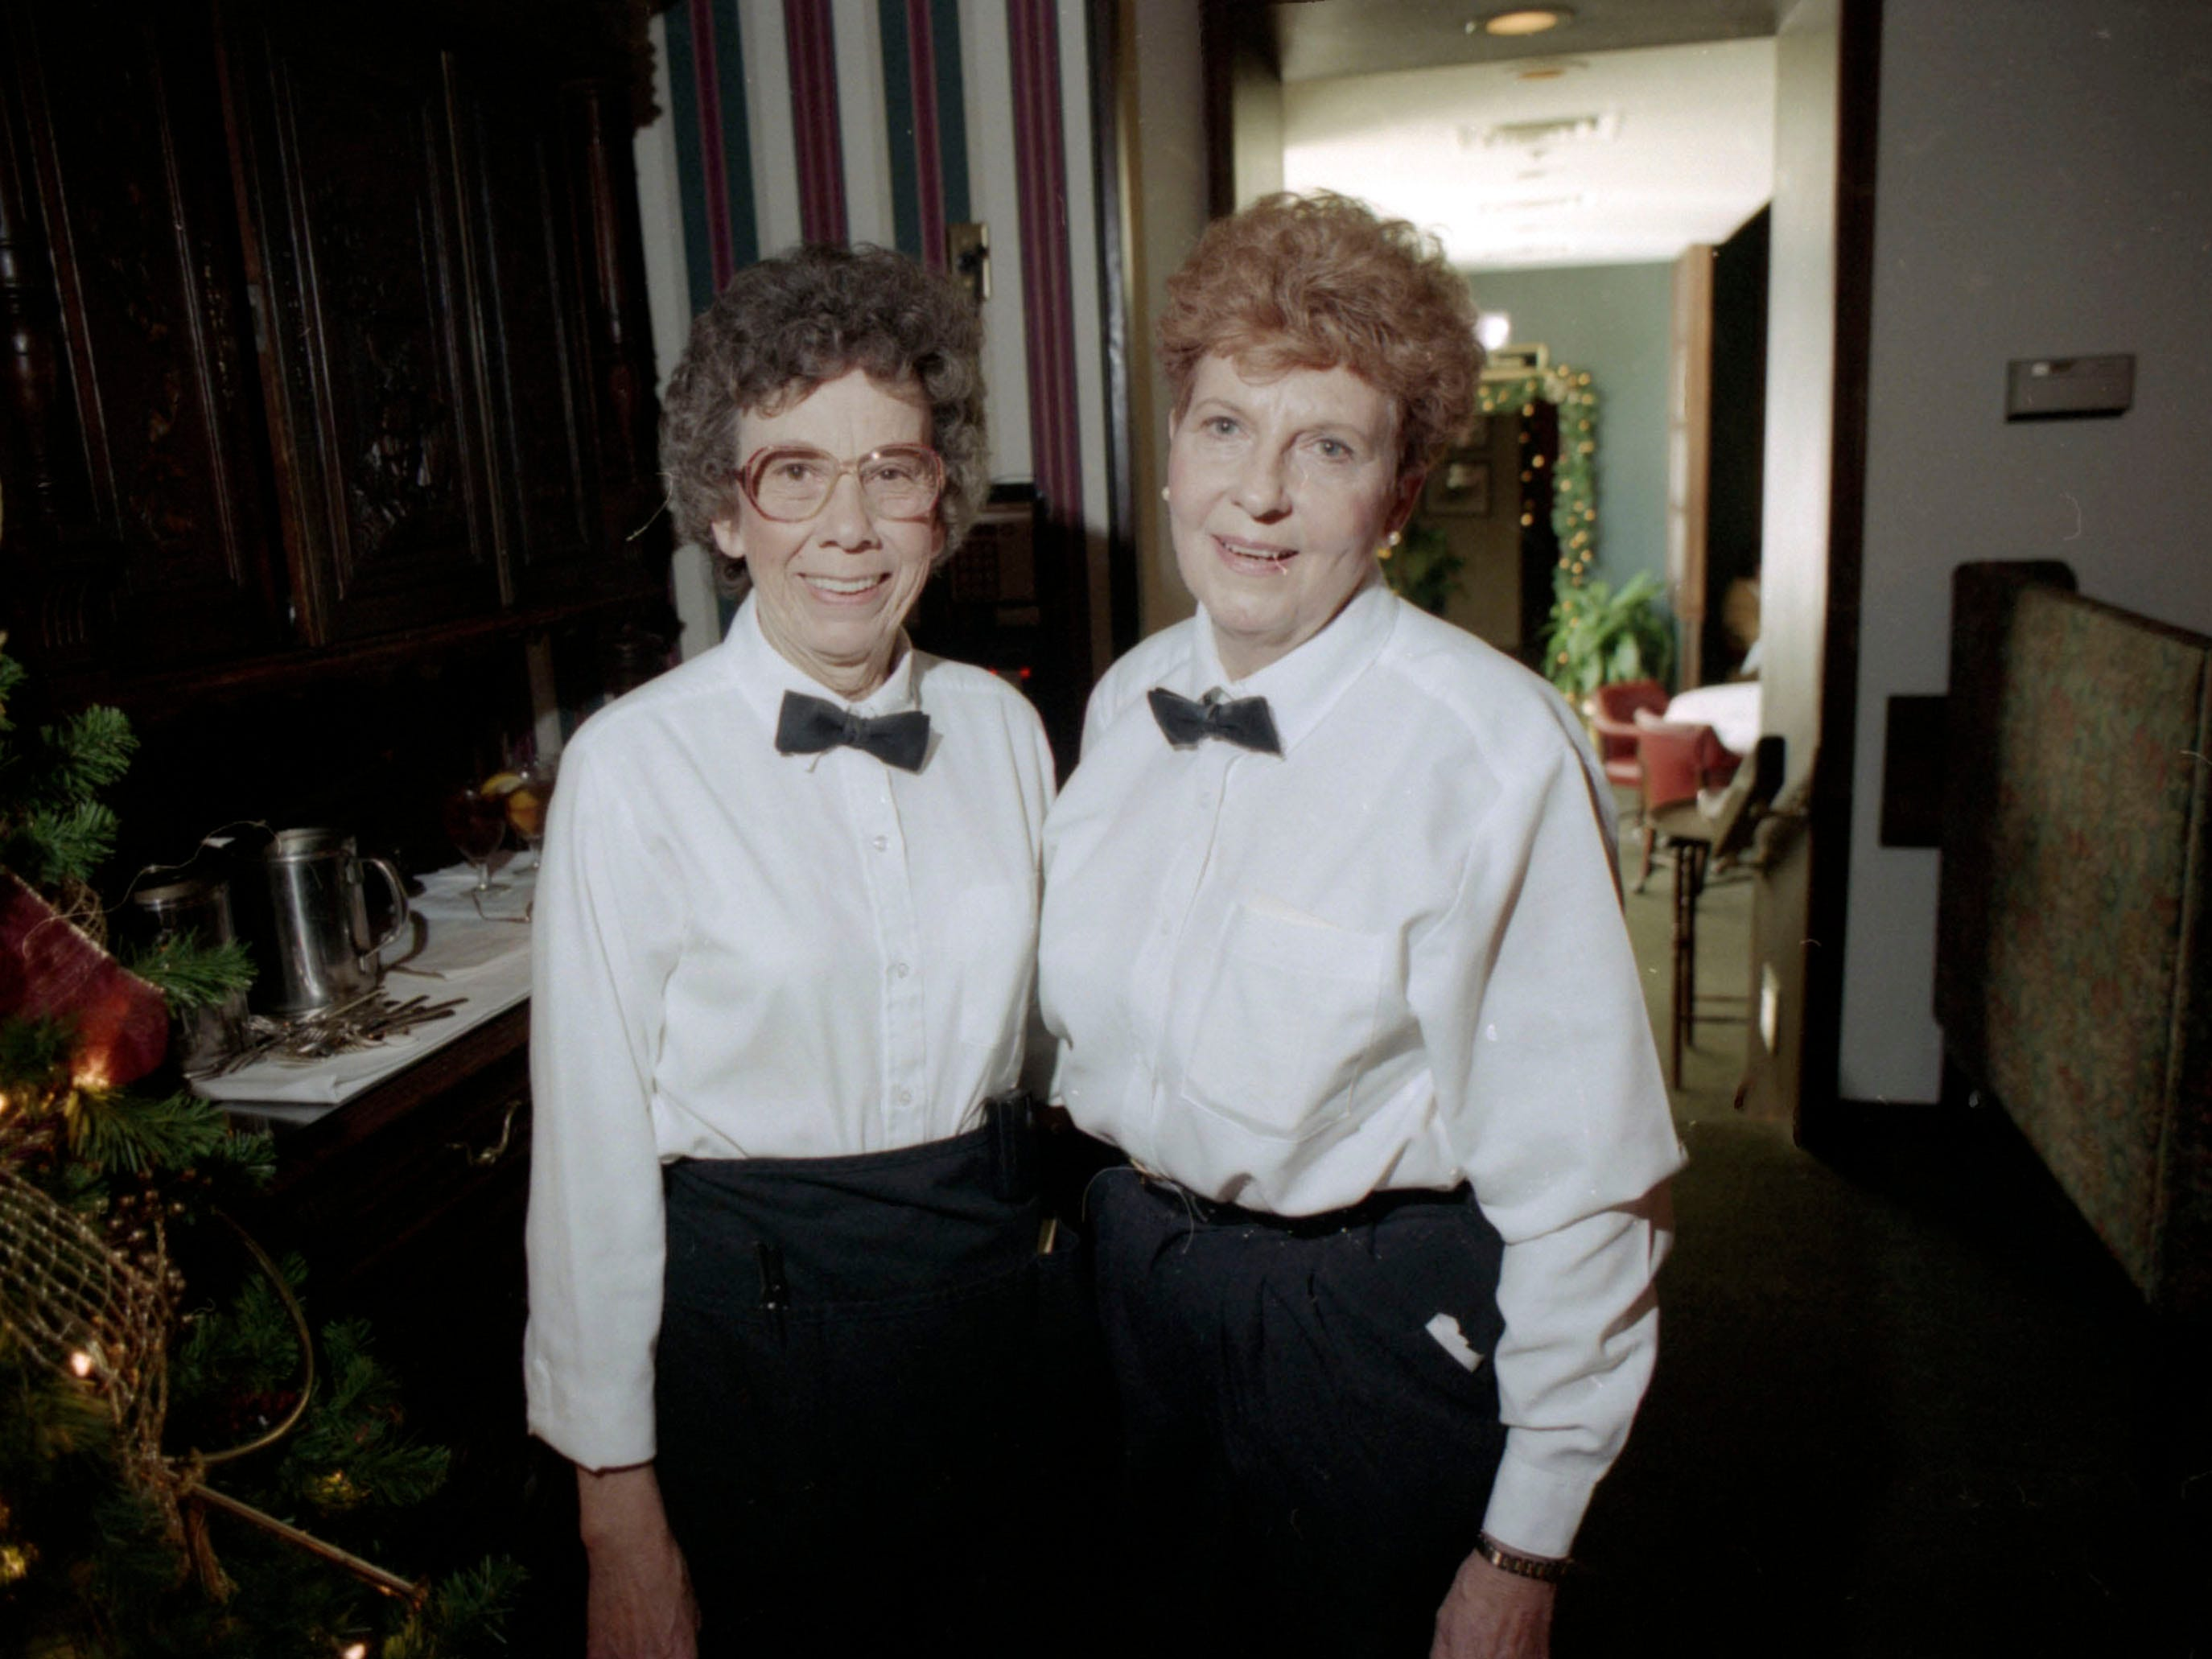 The retirement of longtime Regas Restaurant waitresses Jean Rymer, left, and Trula Lawson in December 1995.